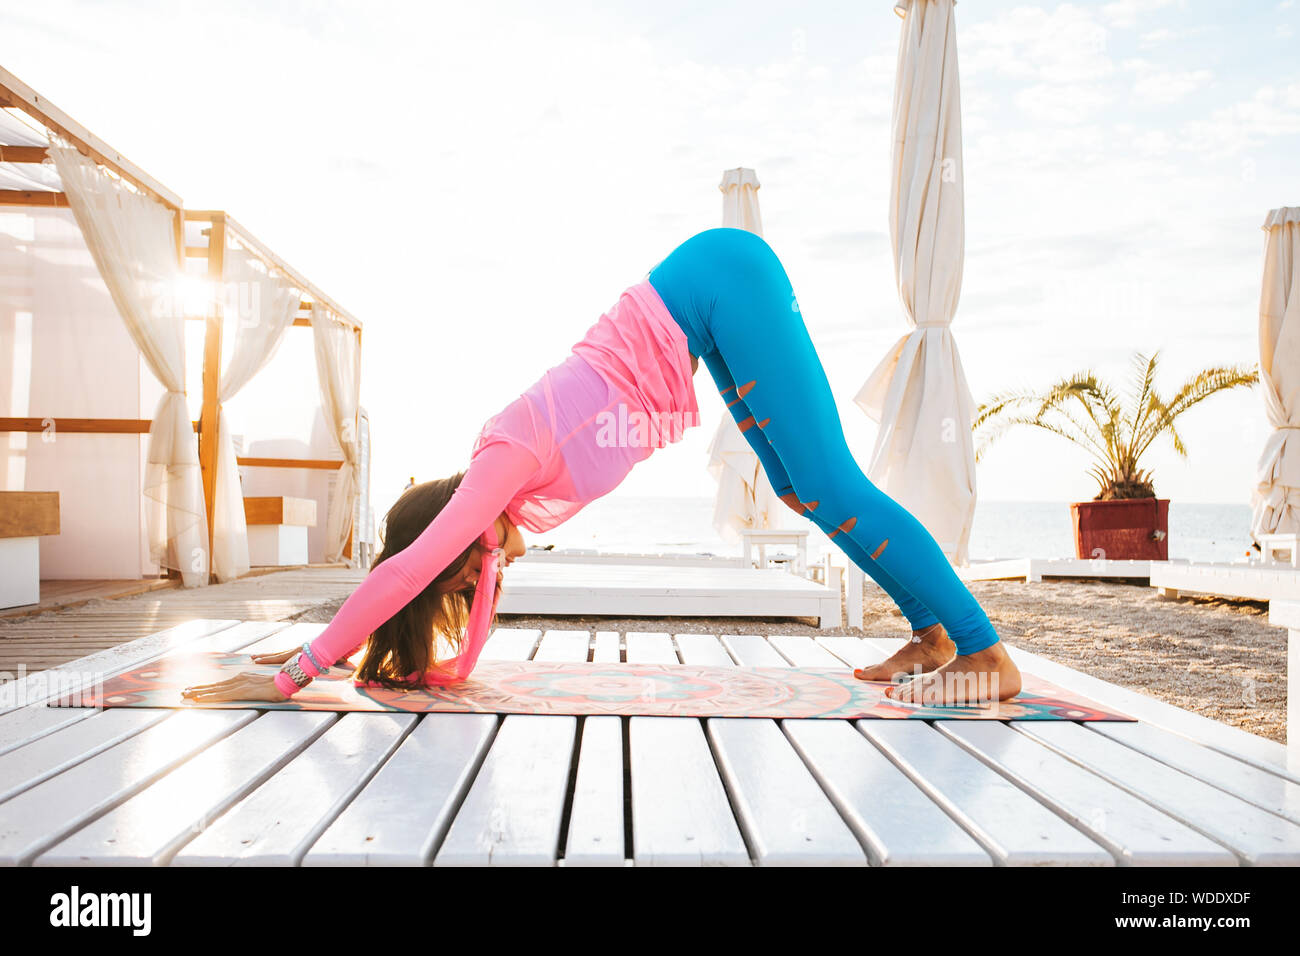 Woman doing yoga outside in a garden on a wooden floor. Stock Photo